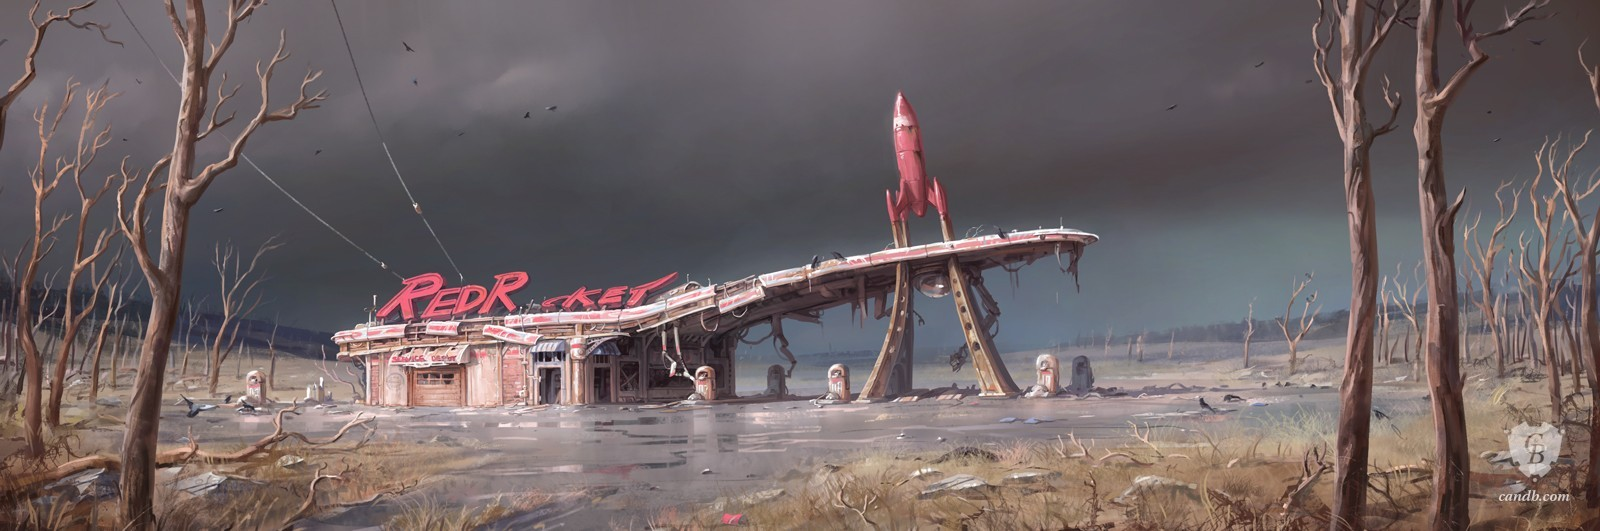 Artwork Red Rocket Fallout 4 Bethesda Softworks